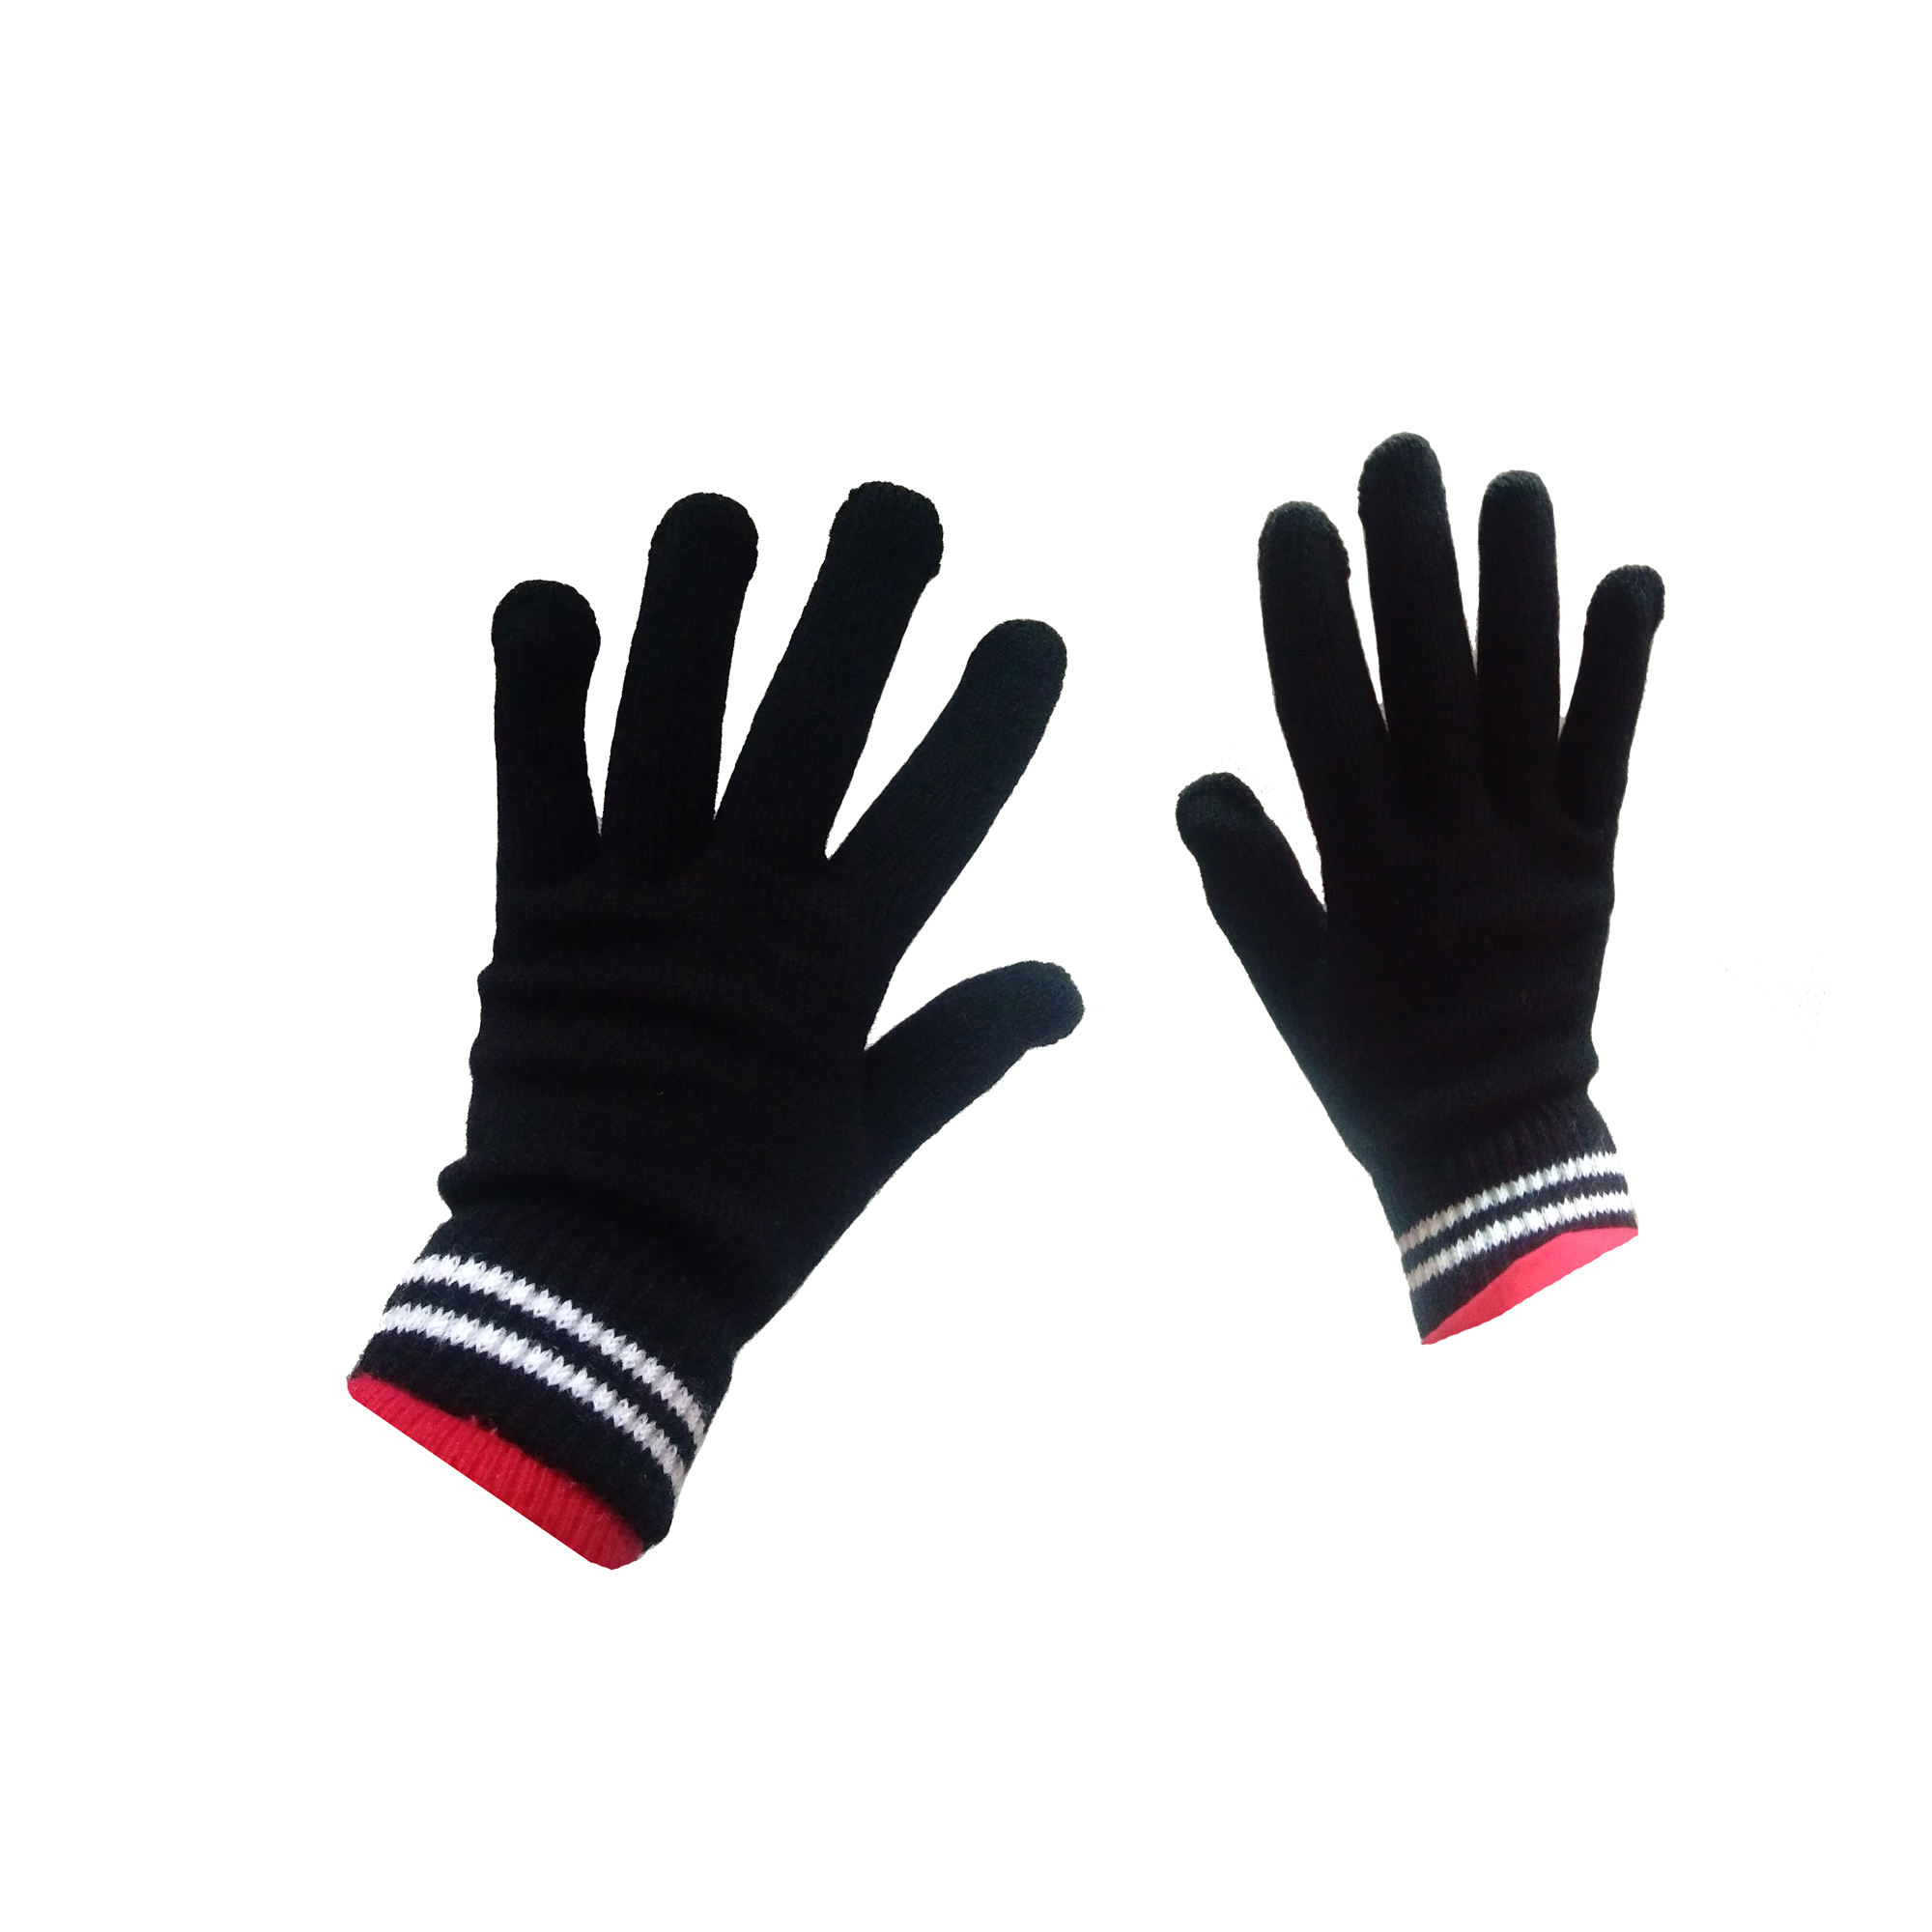 promotional five-finger acrylic mitten gloves